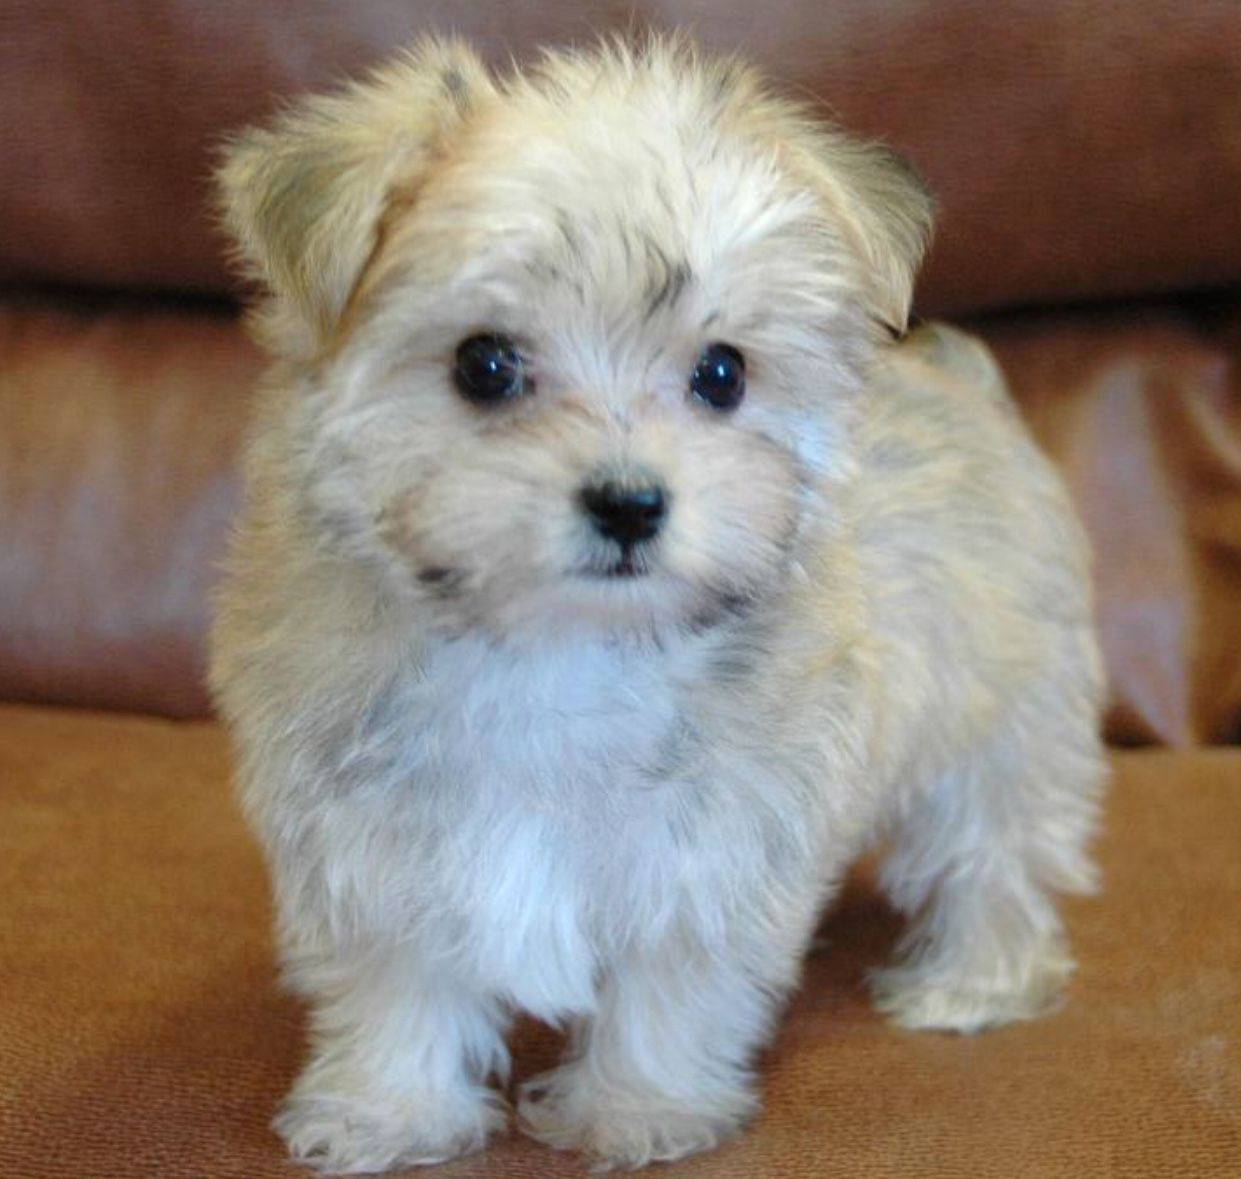 Pin by Ell on Cute dogs Teacup maltipoo, Maltipoo